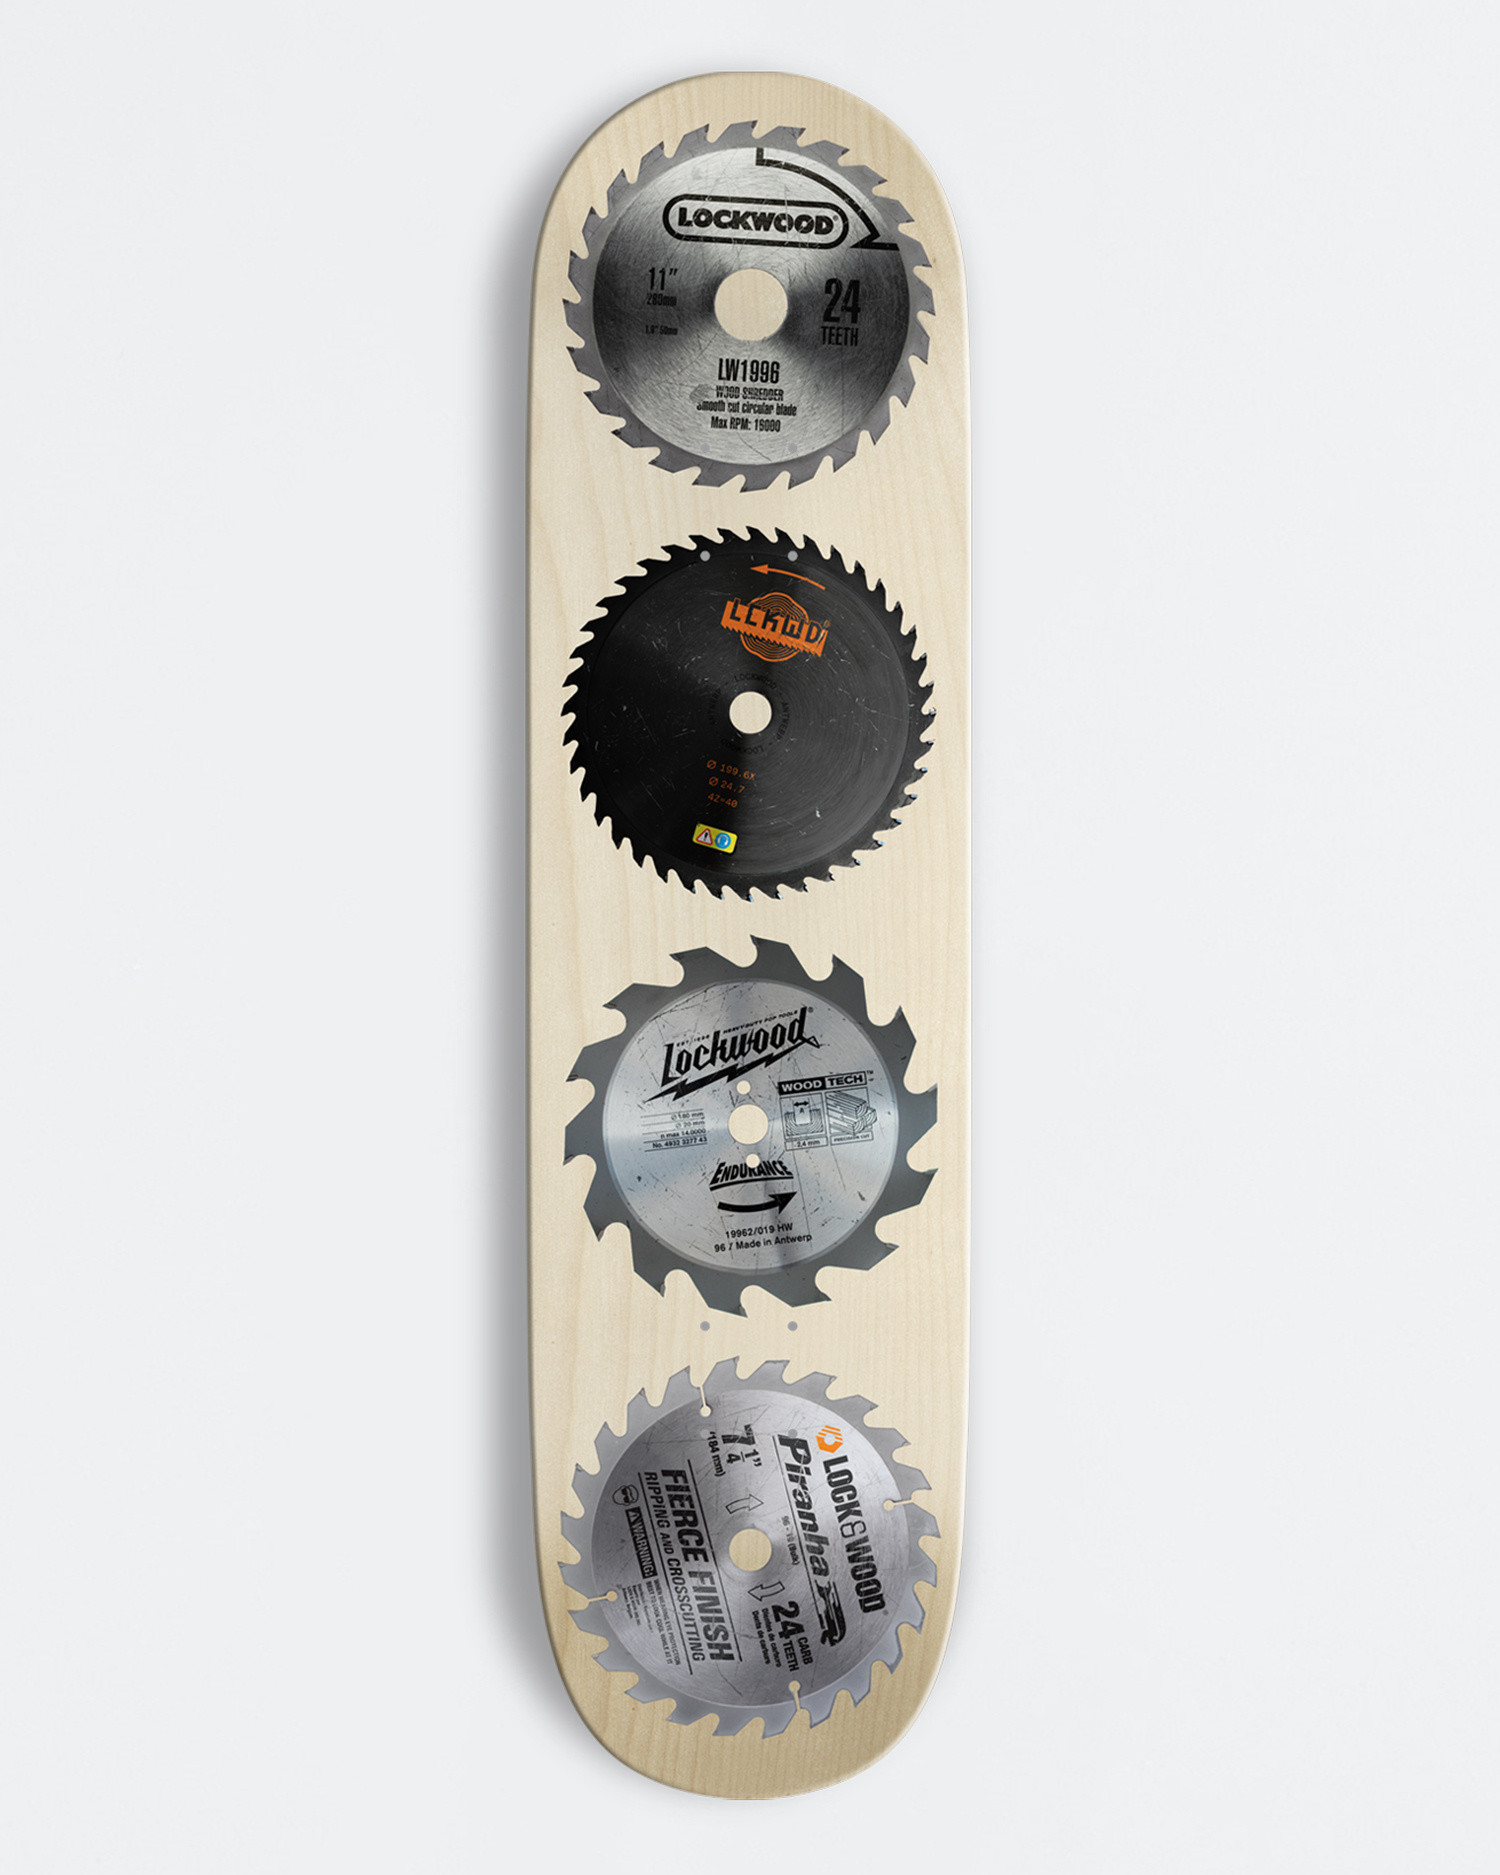 Lockwood Deck Sawblades 8.25""